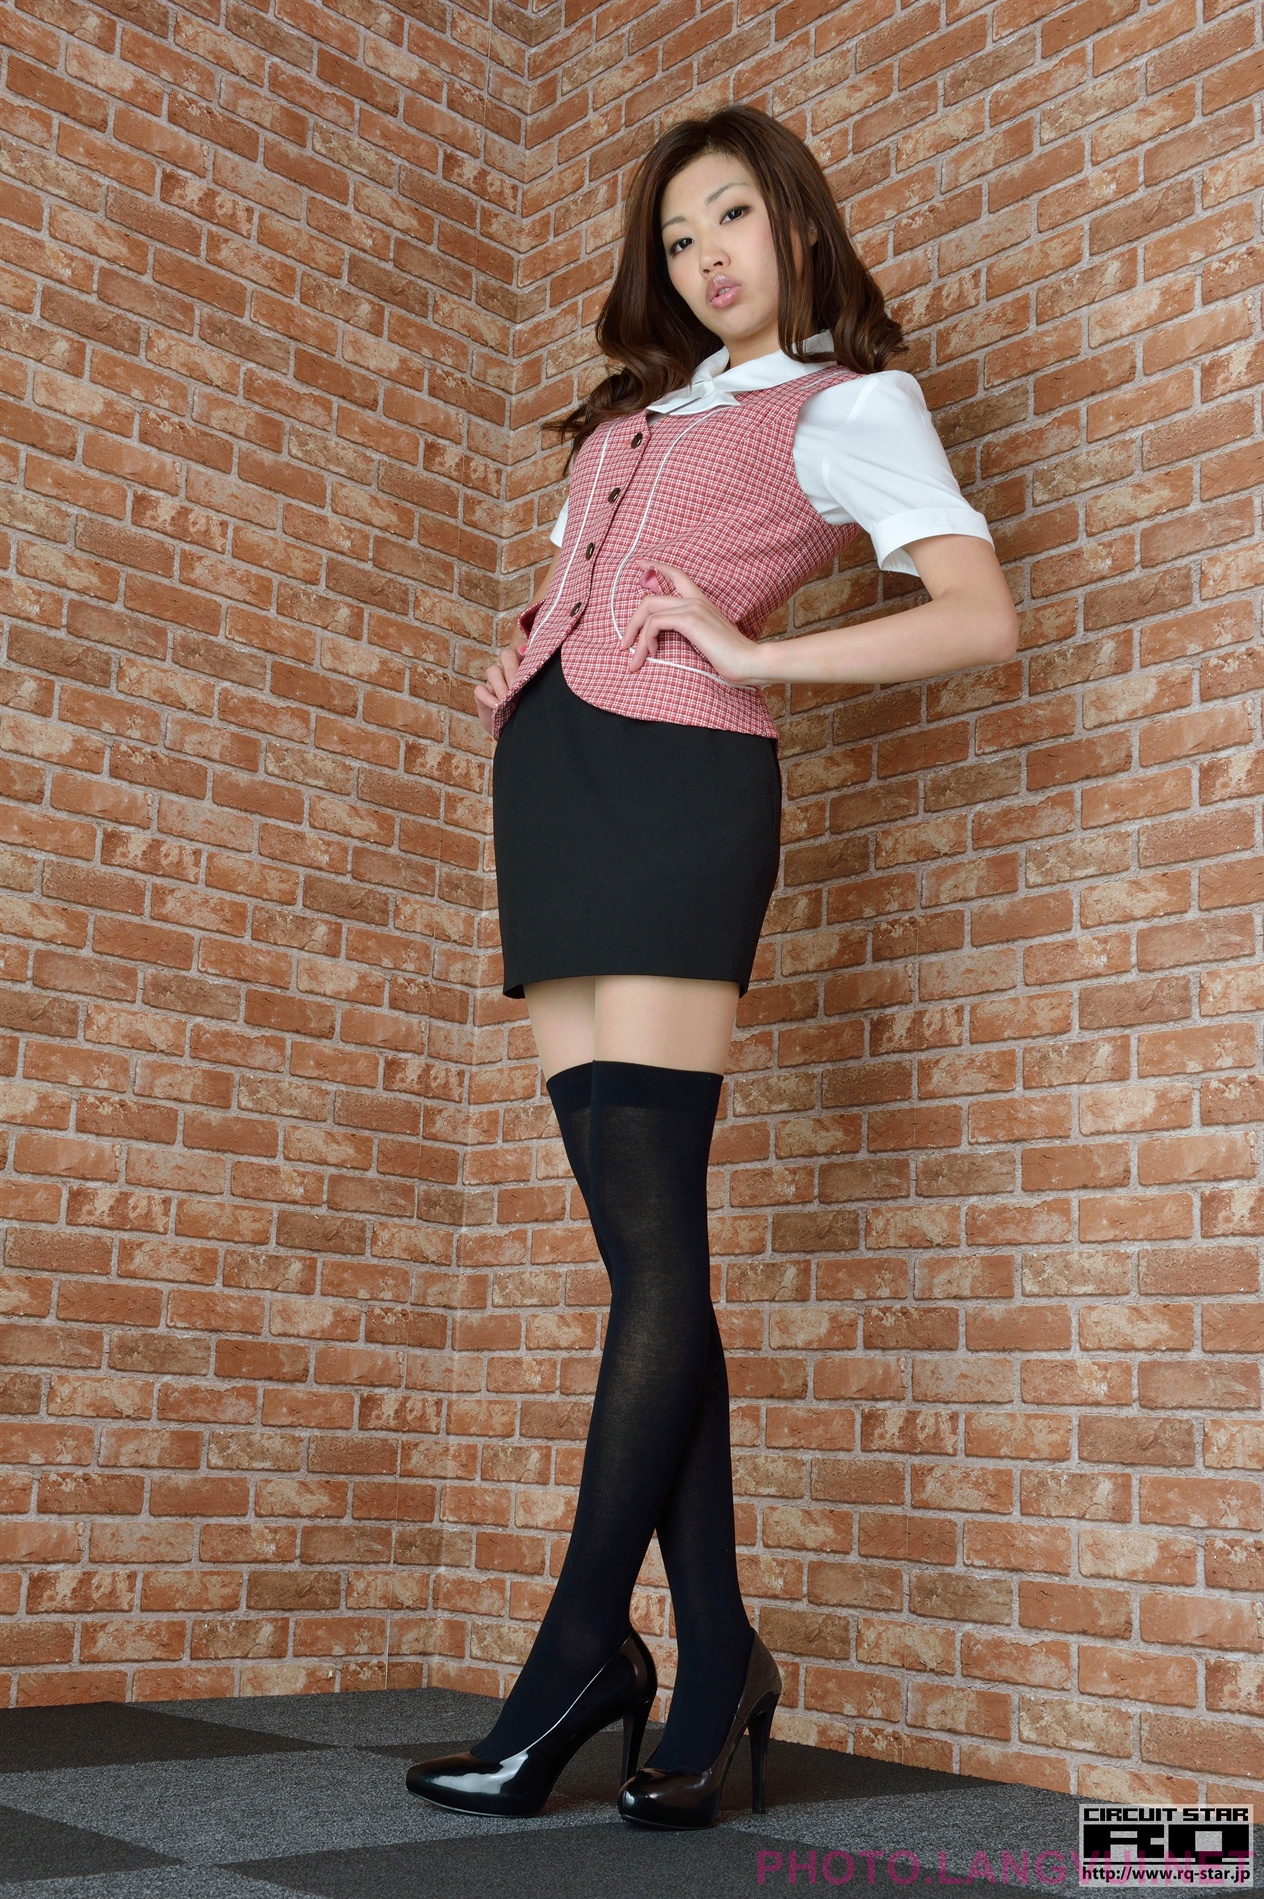 RQ STAR No 01060 Miho Abe Office Lady